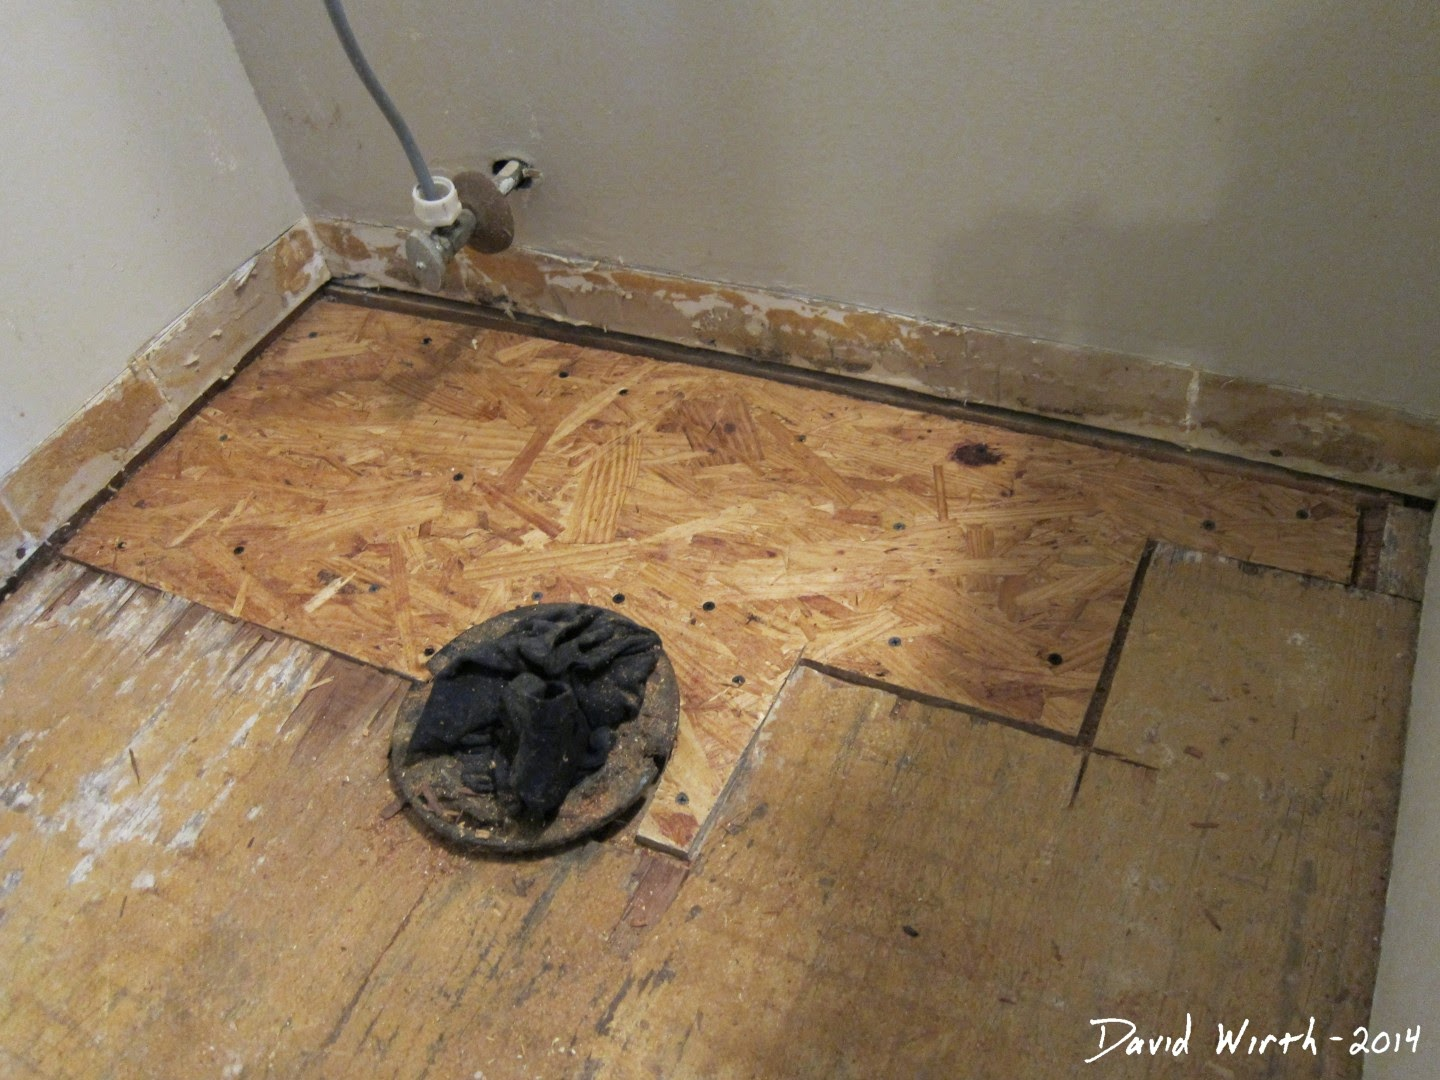 How To Repair Rotted Floor, Wood, Fix, Bathroom, Tile Part 89